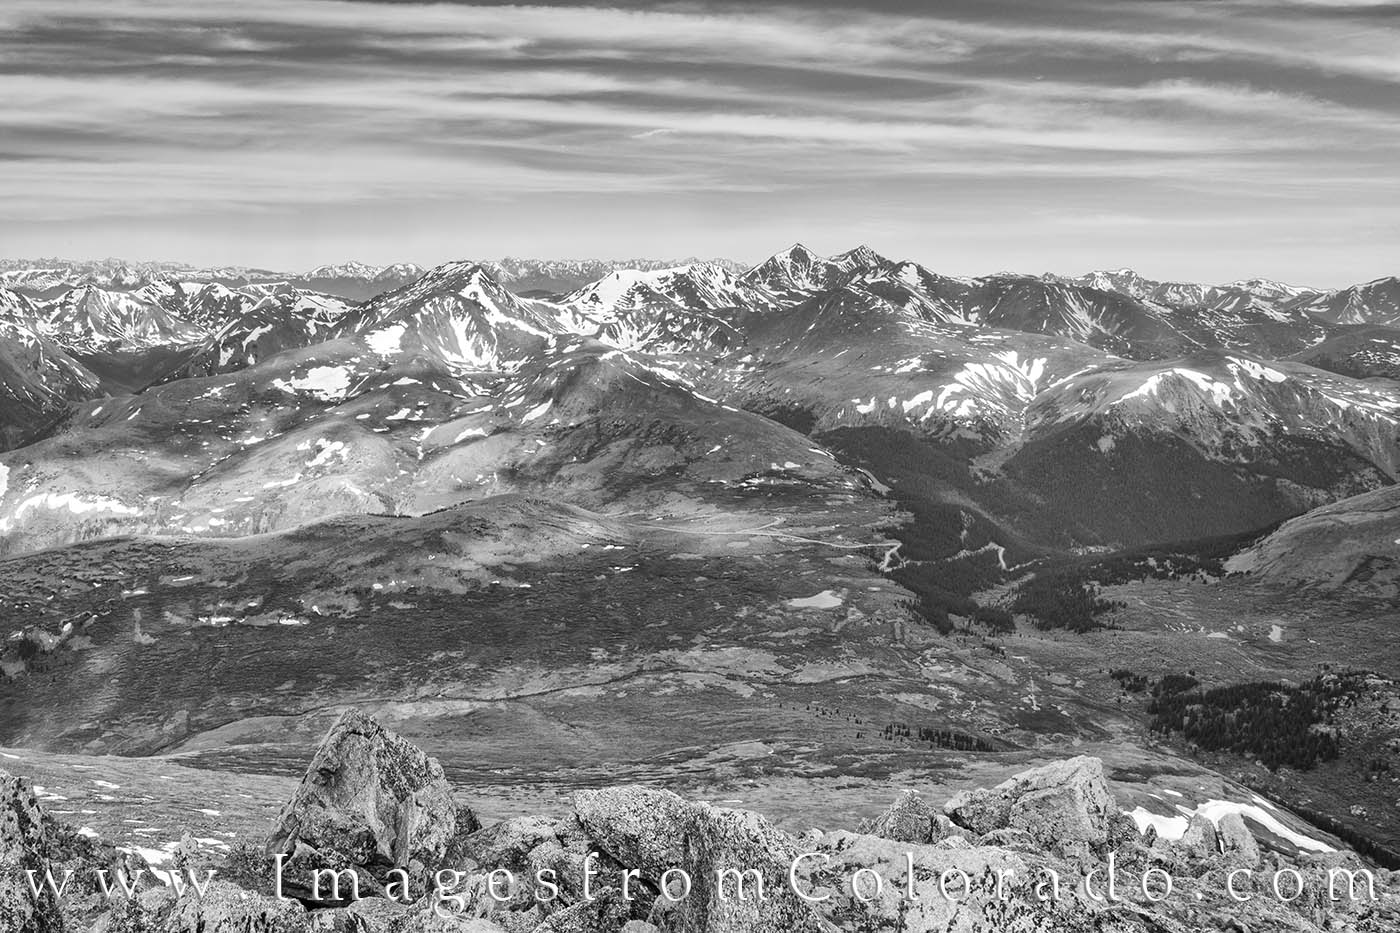 14ers, bierstadt, grays, torreys, colorado landscapes, rocky, mountains, colorado hikes, hiking 14ers, black and white, prints for sale, colorado prints, wall decor, photo